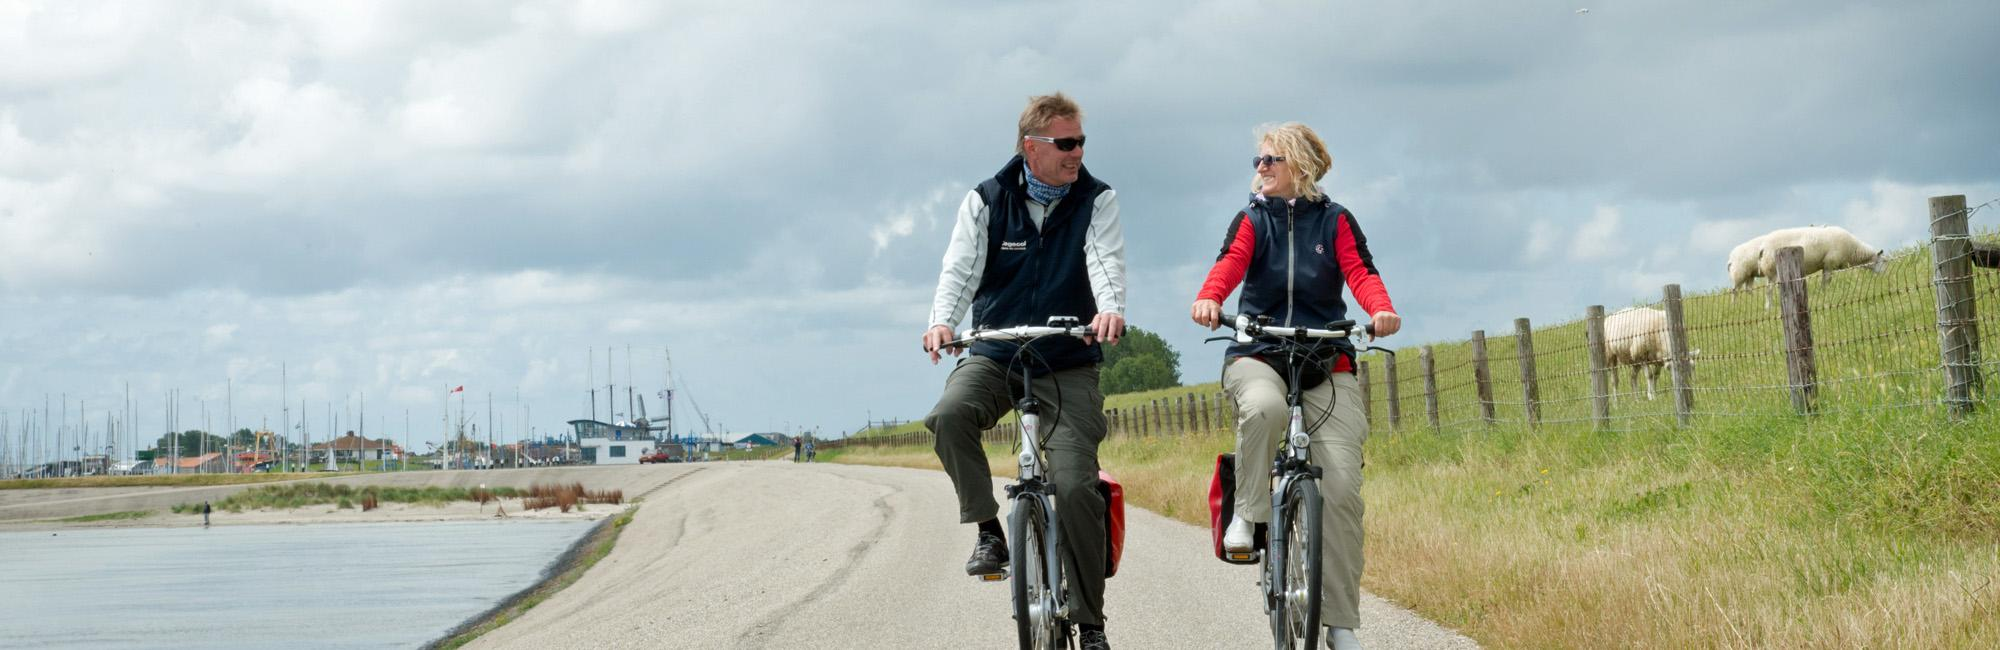 Dutch Bike Tours Radreisen Sail und Bike IJsselmeer